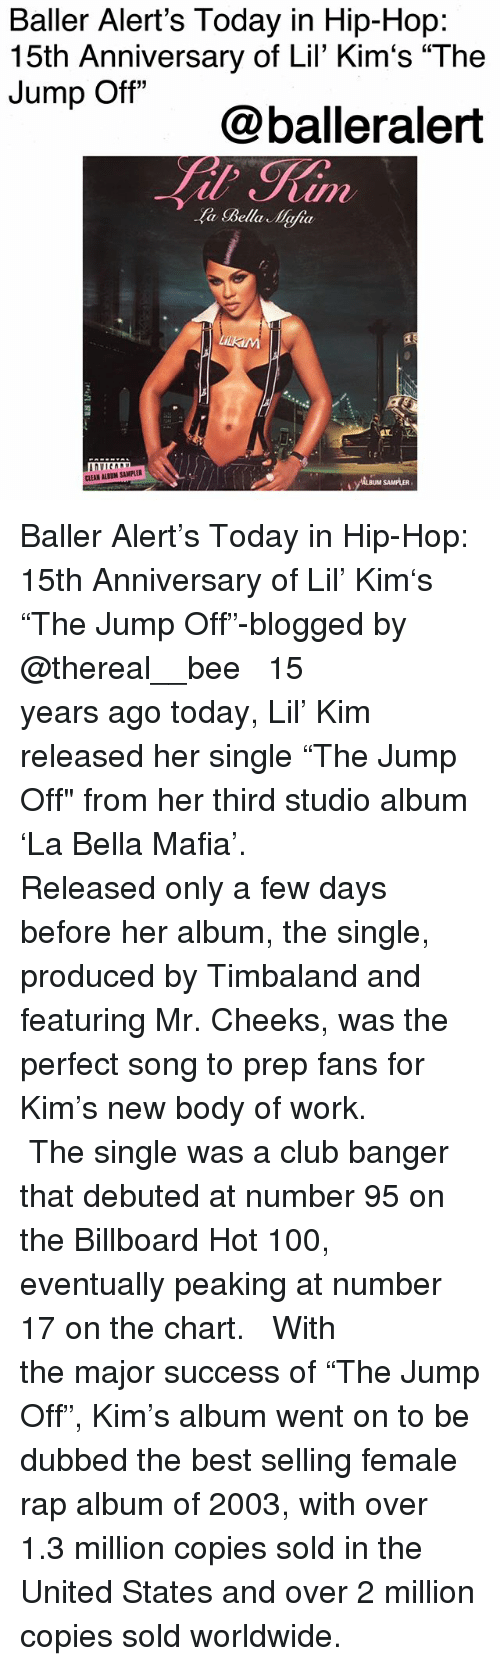 """Anaconda, Baller Alert, and Billboard: Baller Alert's Today in Hip-Hop:  15th Anniversary of Lil' Kim's """"The  Jump Off""""  @balleralert  a Bella Mafia  AL  は,  CLEAN ALBUM SAMPLER  ALBUM SAMPLER Baller Alert's Today in Hip-Hop: 15th Anniversary of Lil' Kim's """"The Jump Off""""-blogged by @thereal__bee ⠀⠀⠀⠀⠀⠀⠀⠀⠀ ⠀⠀ 15 years ago today, Lil' Kim released her single """"The Jump Off"""" from her third studio album 'La Bella Mafia'. ⠀⠀⠀⠀⠀⠀⠀⠀⠀ ⠀⠀ Released only a few days before her album, the single, produced by Timbaland and featuring Mr. Cheeks, was the perfect song to prep fans for Kim's new body of work. ⠀⠀⠀⠀⠀⠀⠀⠀⠀ ⠀⠀ The single was a club banger that debuted at number 95 on the Billboard Hot 100, eventually peaking at number 17 on the chart. ⠀⠀⠀⠀⠀⠀⠀⠀⠀ ⠀⠀ With the major success of """"The Jump Off"""", Kim's album went on to be dubbed the best selling female rap album of 2003, with over 1.3 million copies sold in the United States and over 2 million copies sold worldwide."""